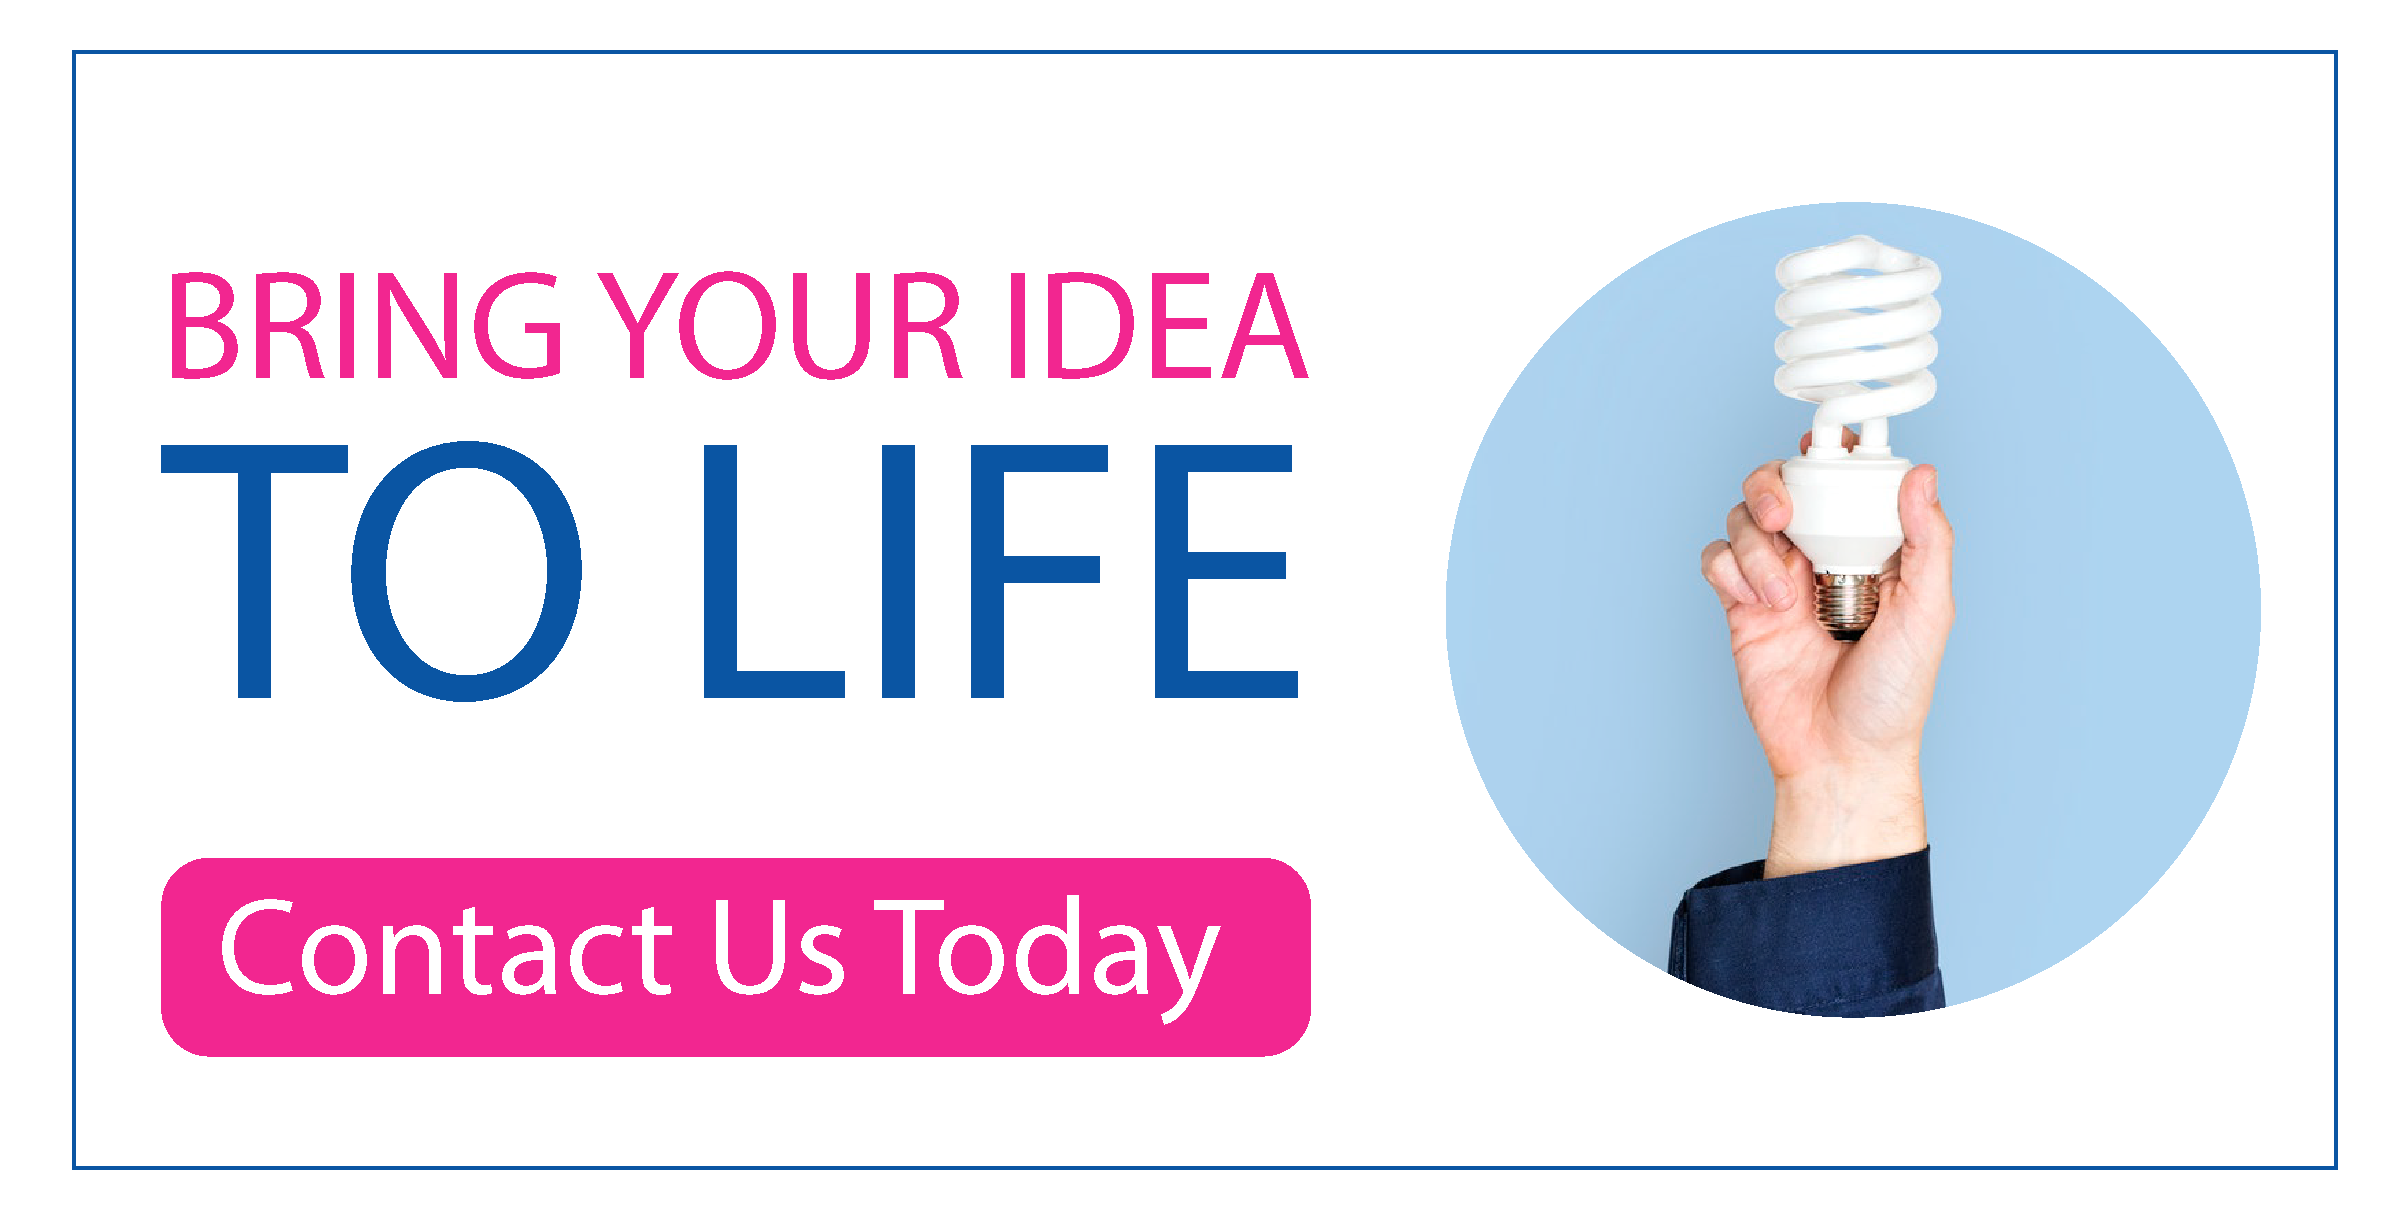 Bring your idea to life lightbulb button blue hand